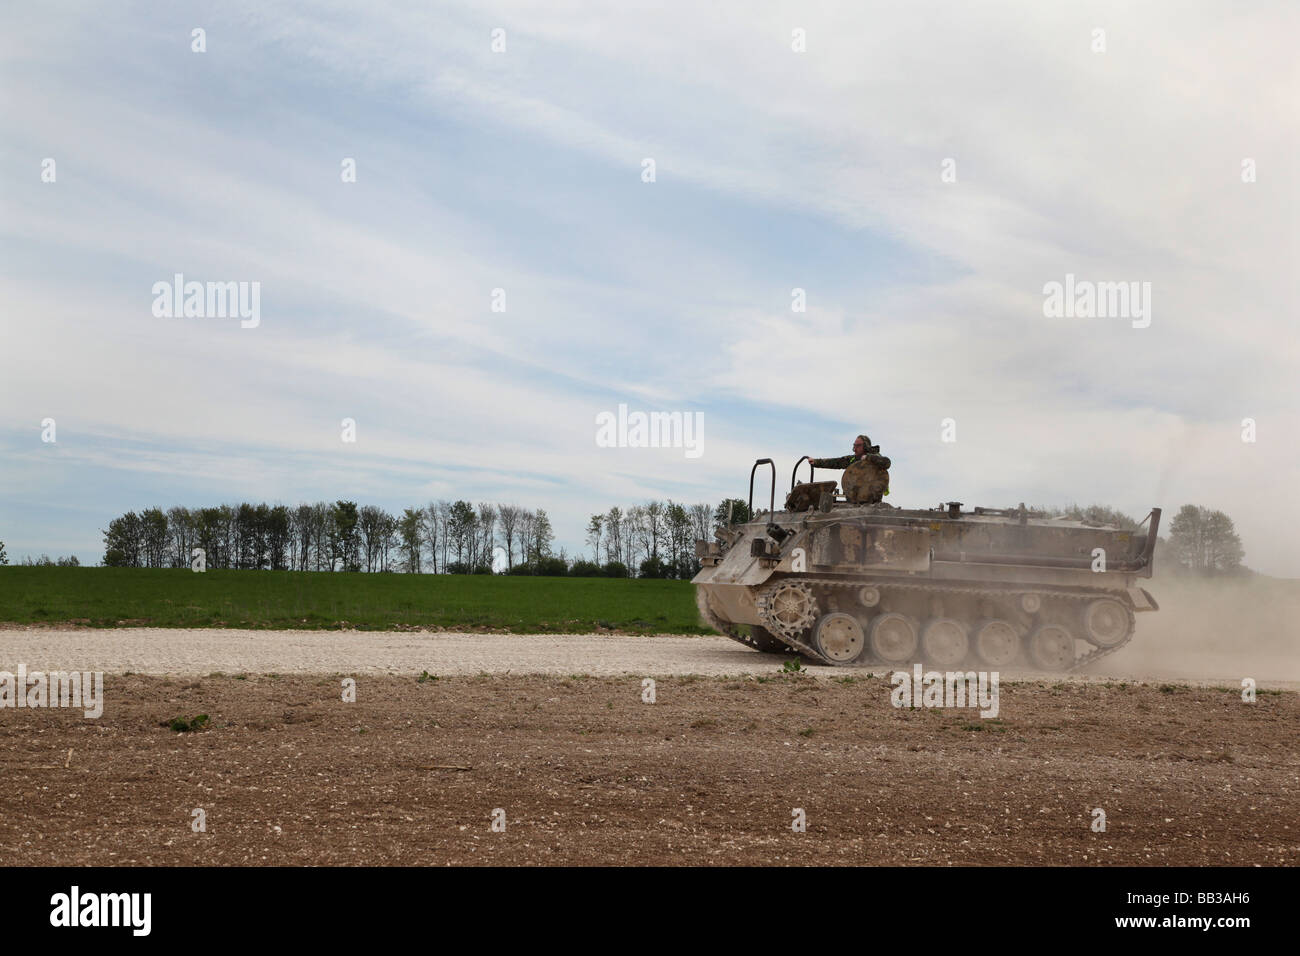 Tank driving experience, Juniper Leisure, Members of the public experience driving military vehicles. - Stock Image